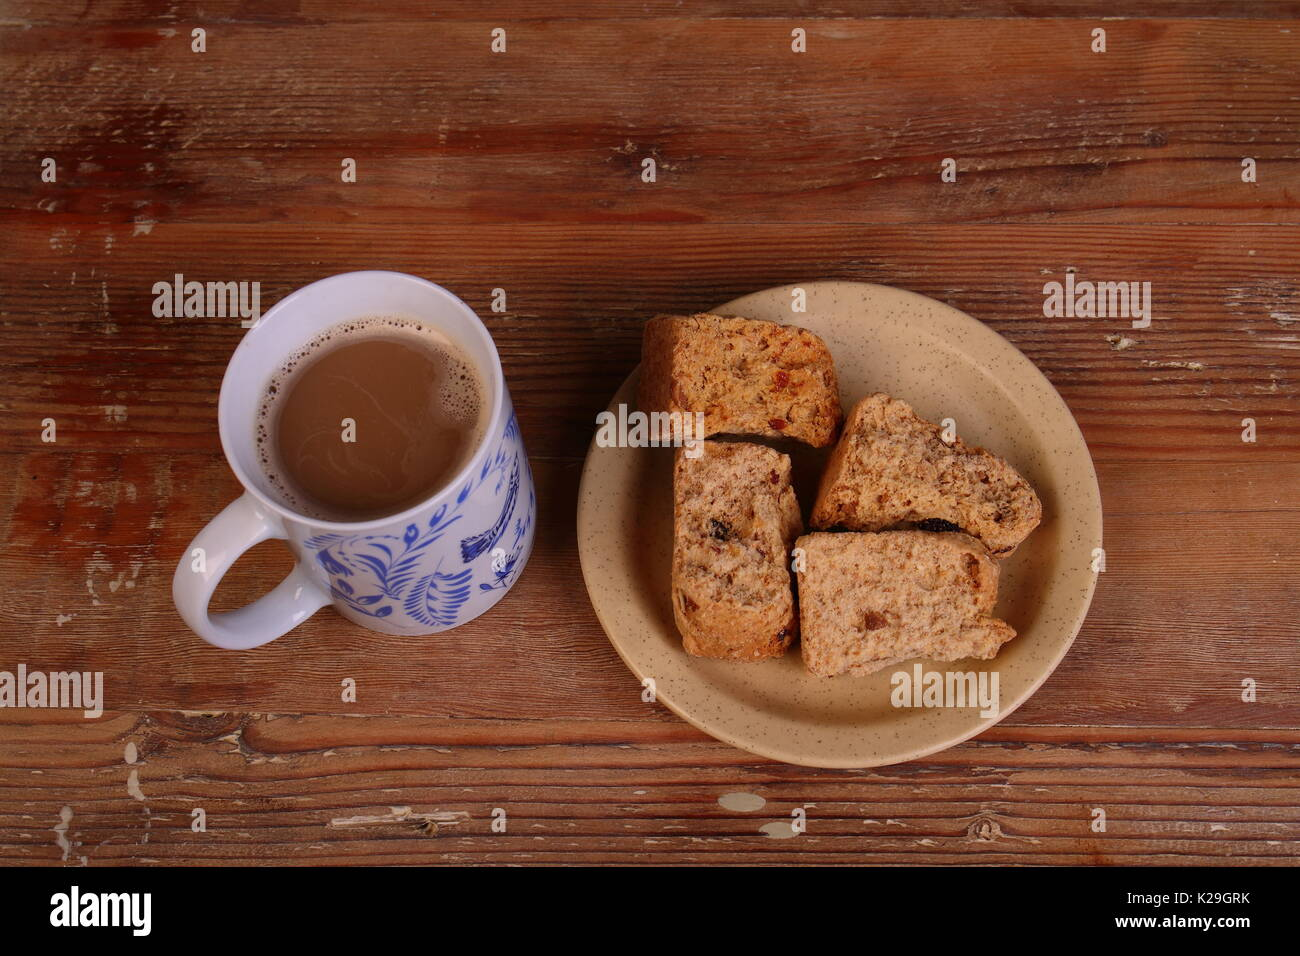 Rusks and coffee - a traditional Afrikaner and South African breakfast meal or snack in landscape format on a clear background with copy space - Stock Image